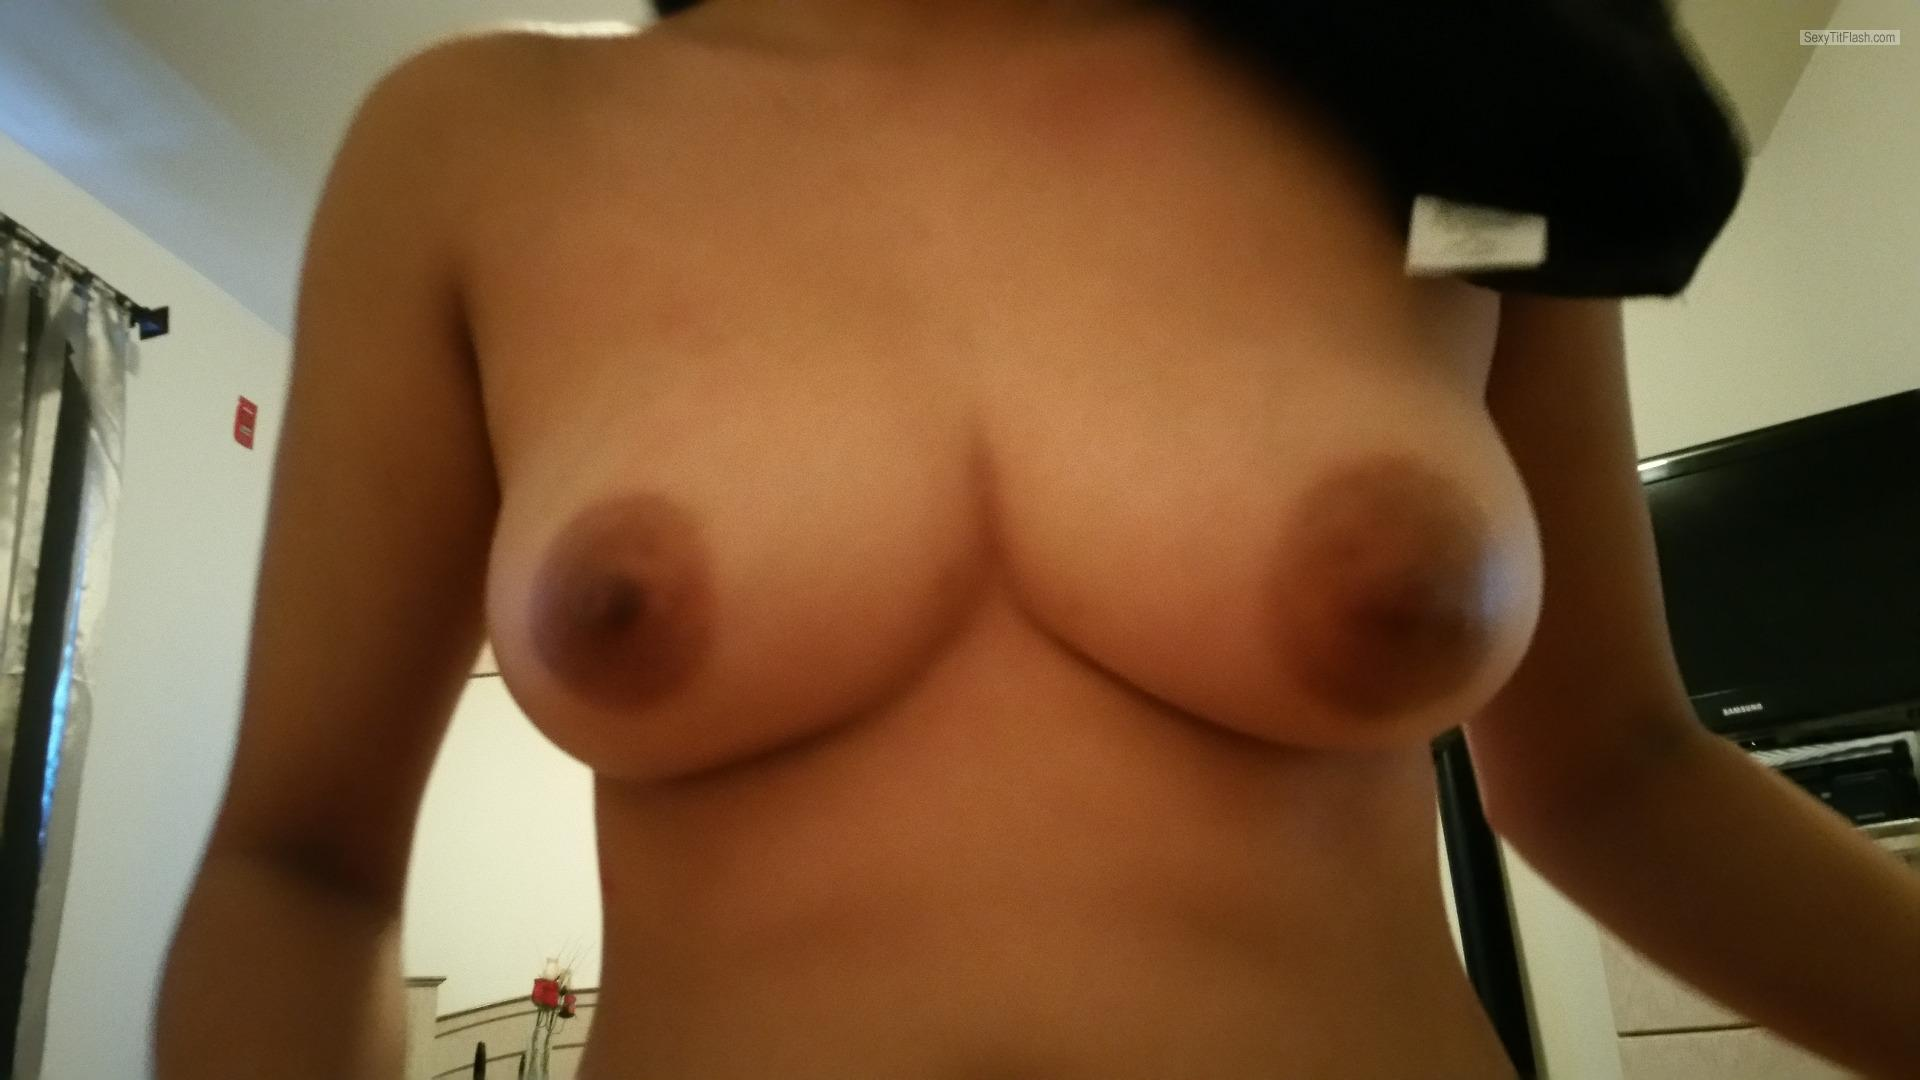 Tit Flash: My Big Tits (Selfie) - Sarah from United States